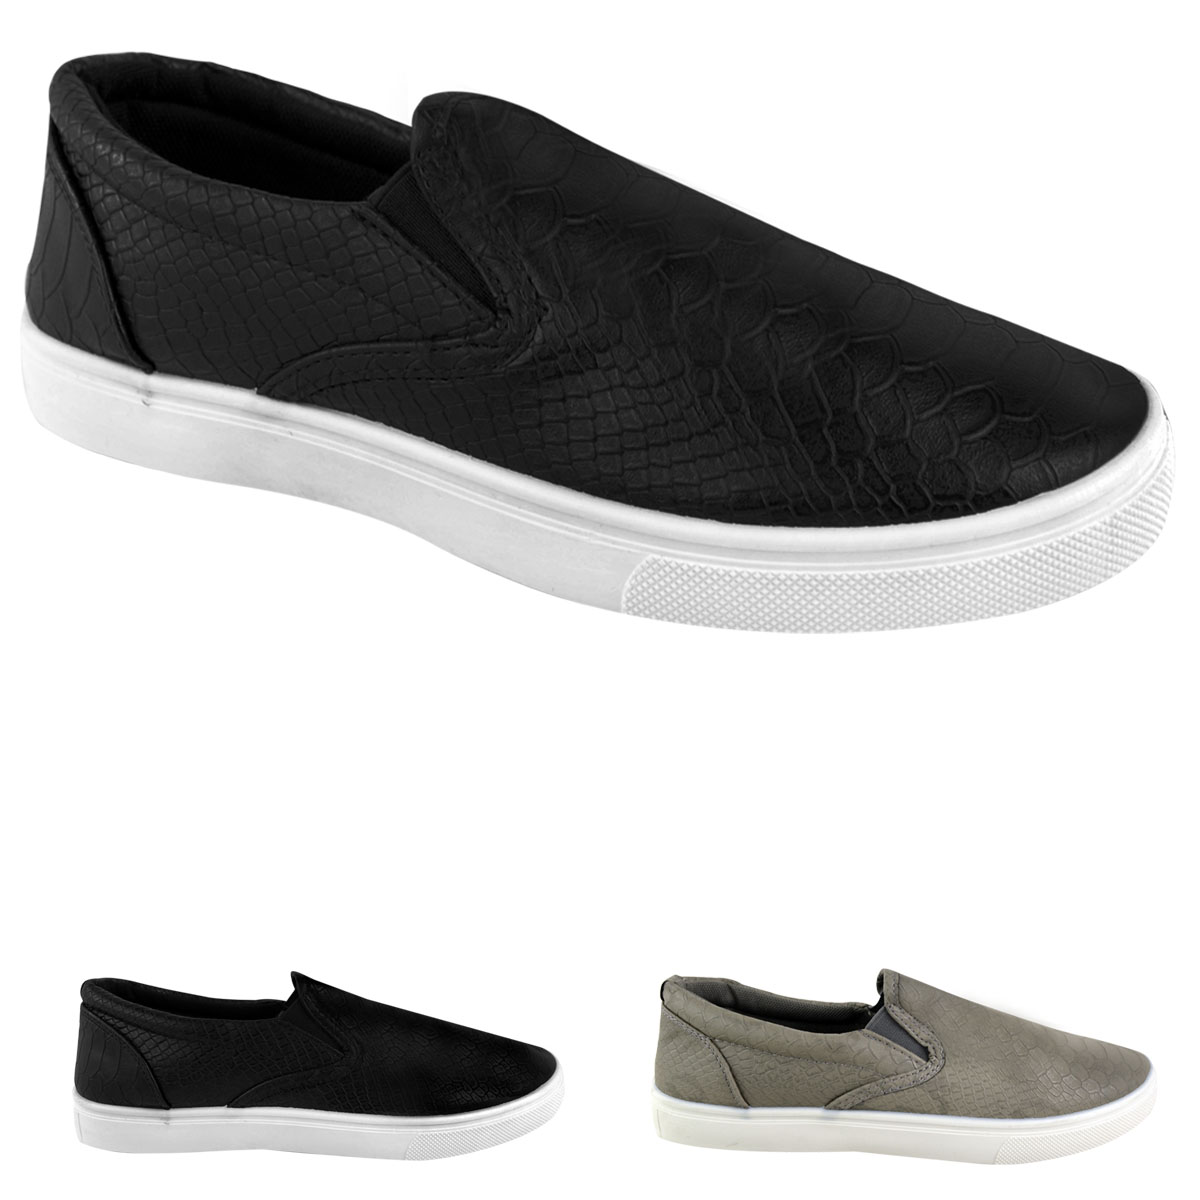 Women's Casual Shoes - Comfortable Sneakers and Casuals from SKECHERS Shop for the latest women's casual shoes, including casual flats, sneakers and tennis shoes, great for work or play. Free shipping both ways!